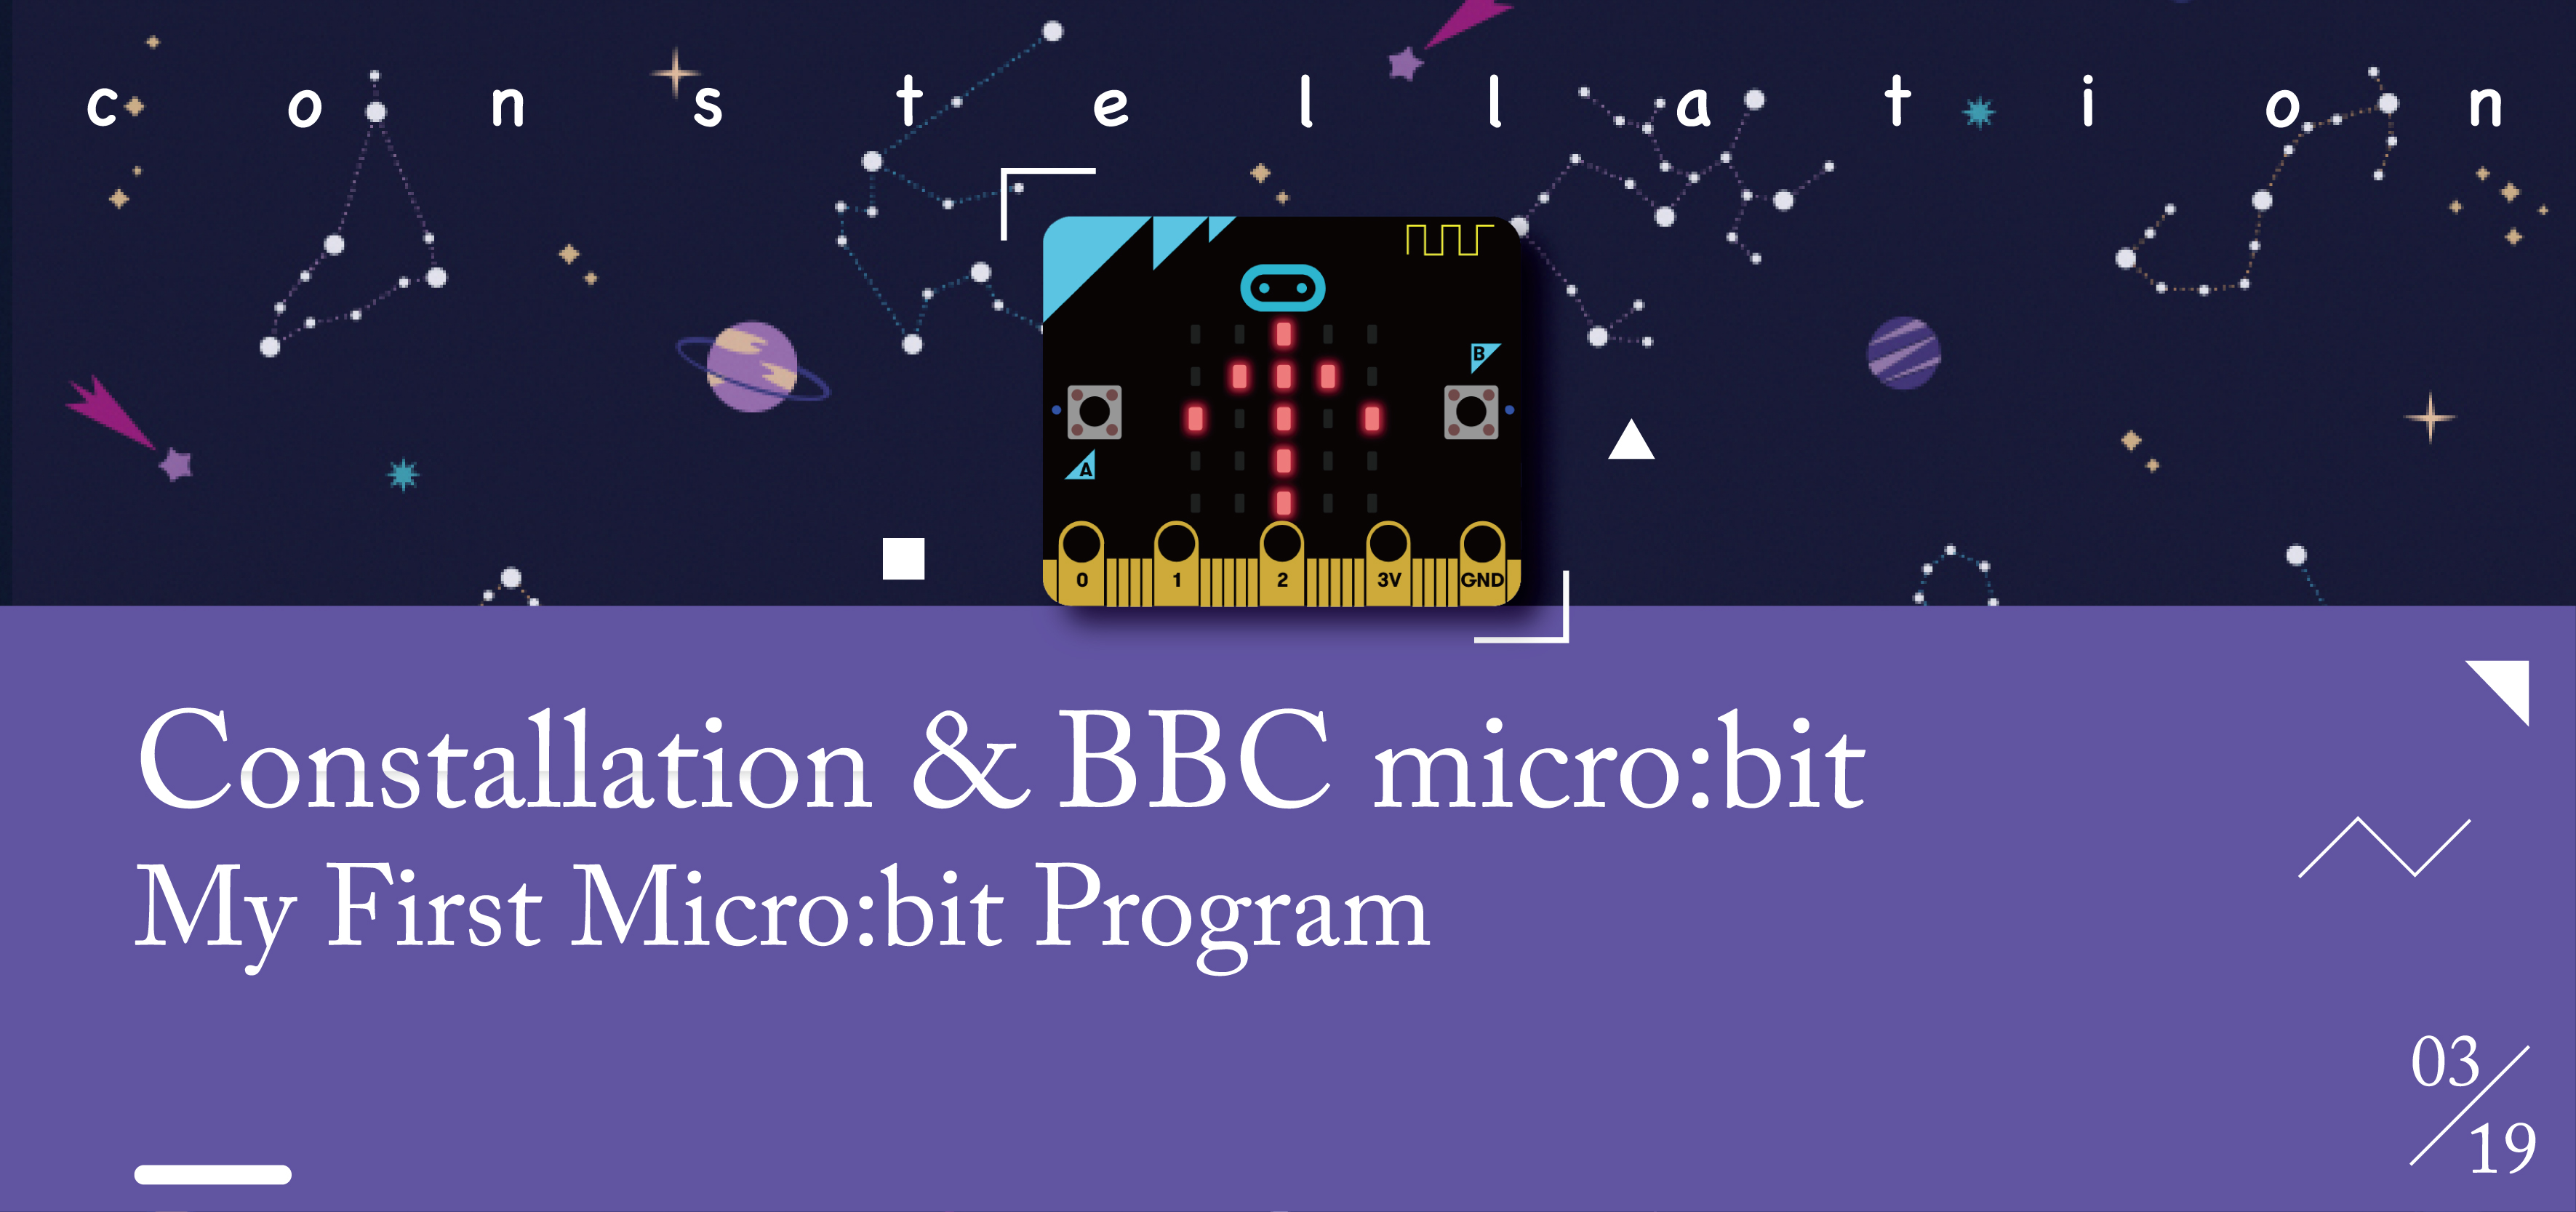 My First Program about BBC Micro:bit and Constallation